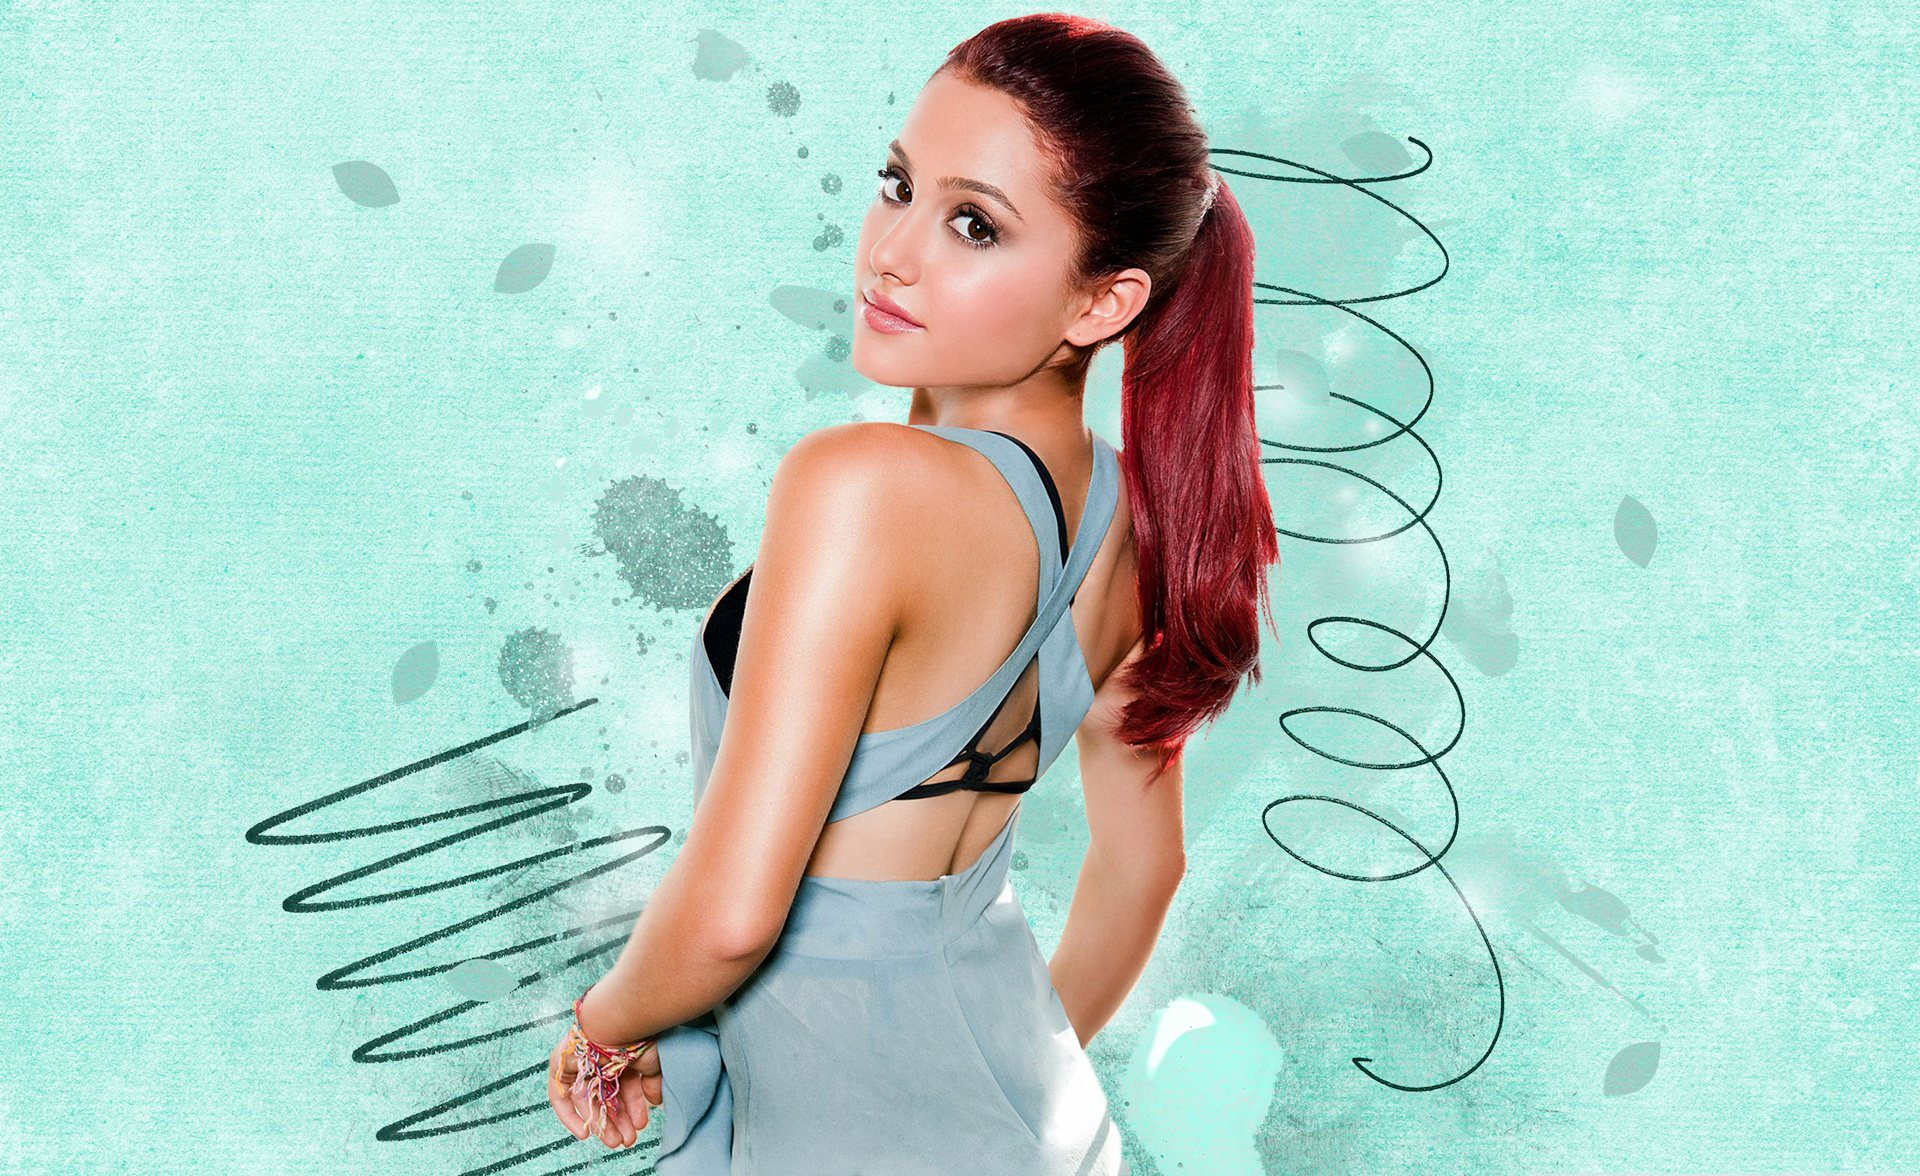 Download Ariana Grande Abstract Photoshoot 7680x4320 Resolution